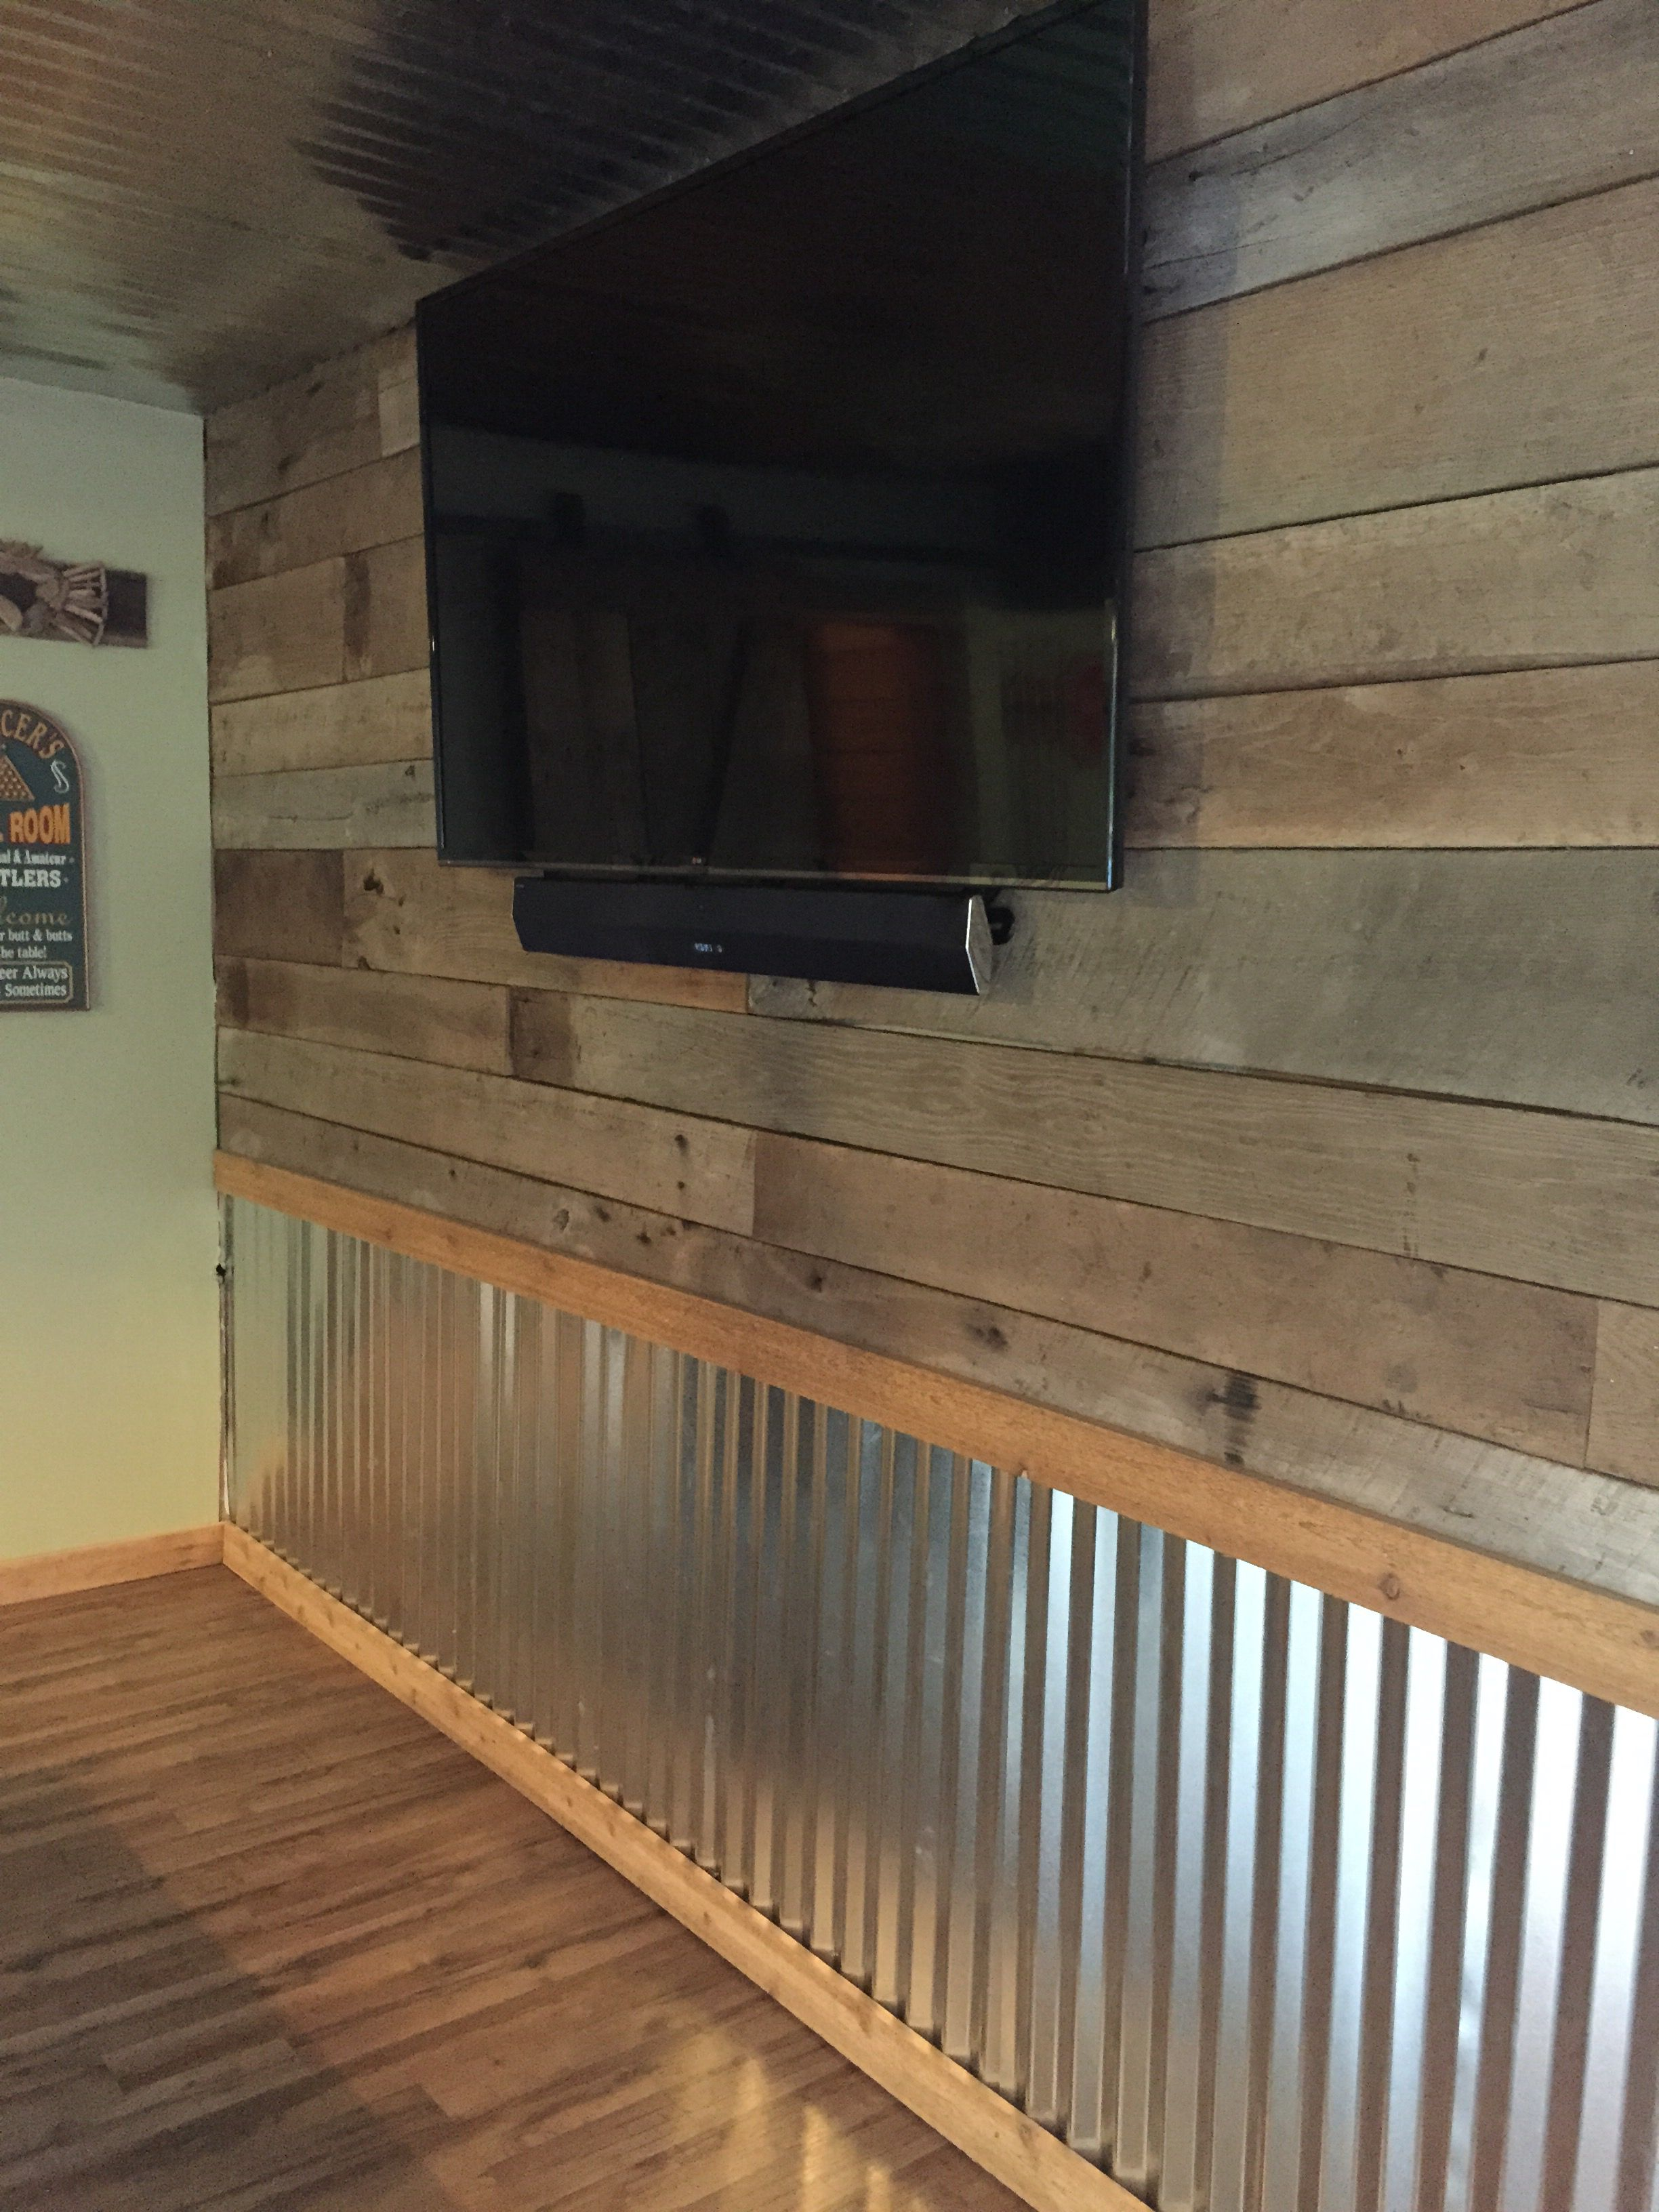 Pallet Wood Chair Rail Rattan Swivel Chairs Barnwood And Tin Wall The Hooch Basement Walls